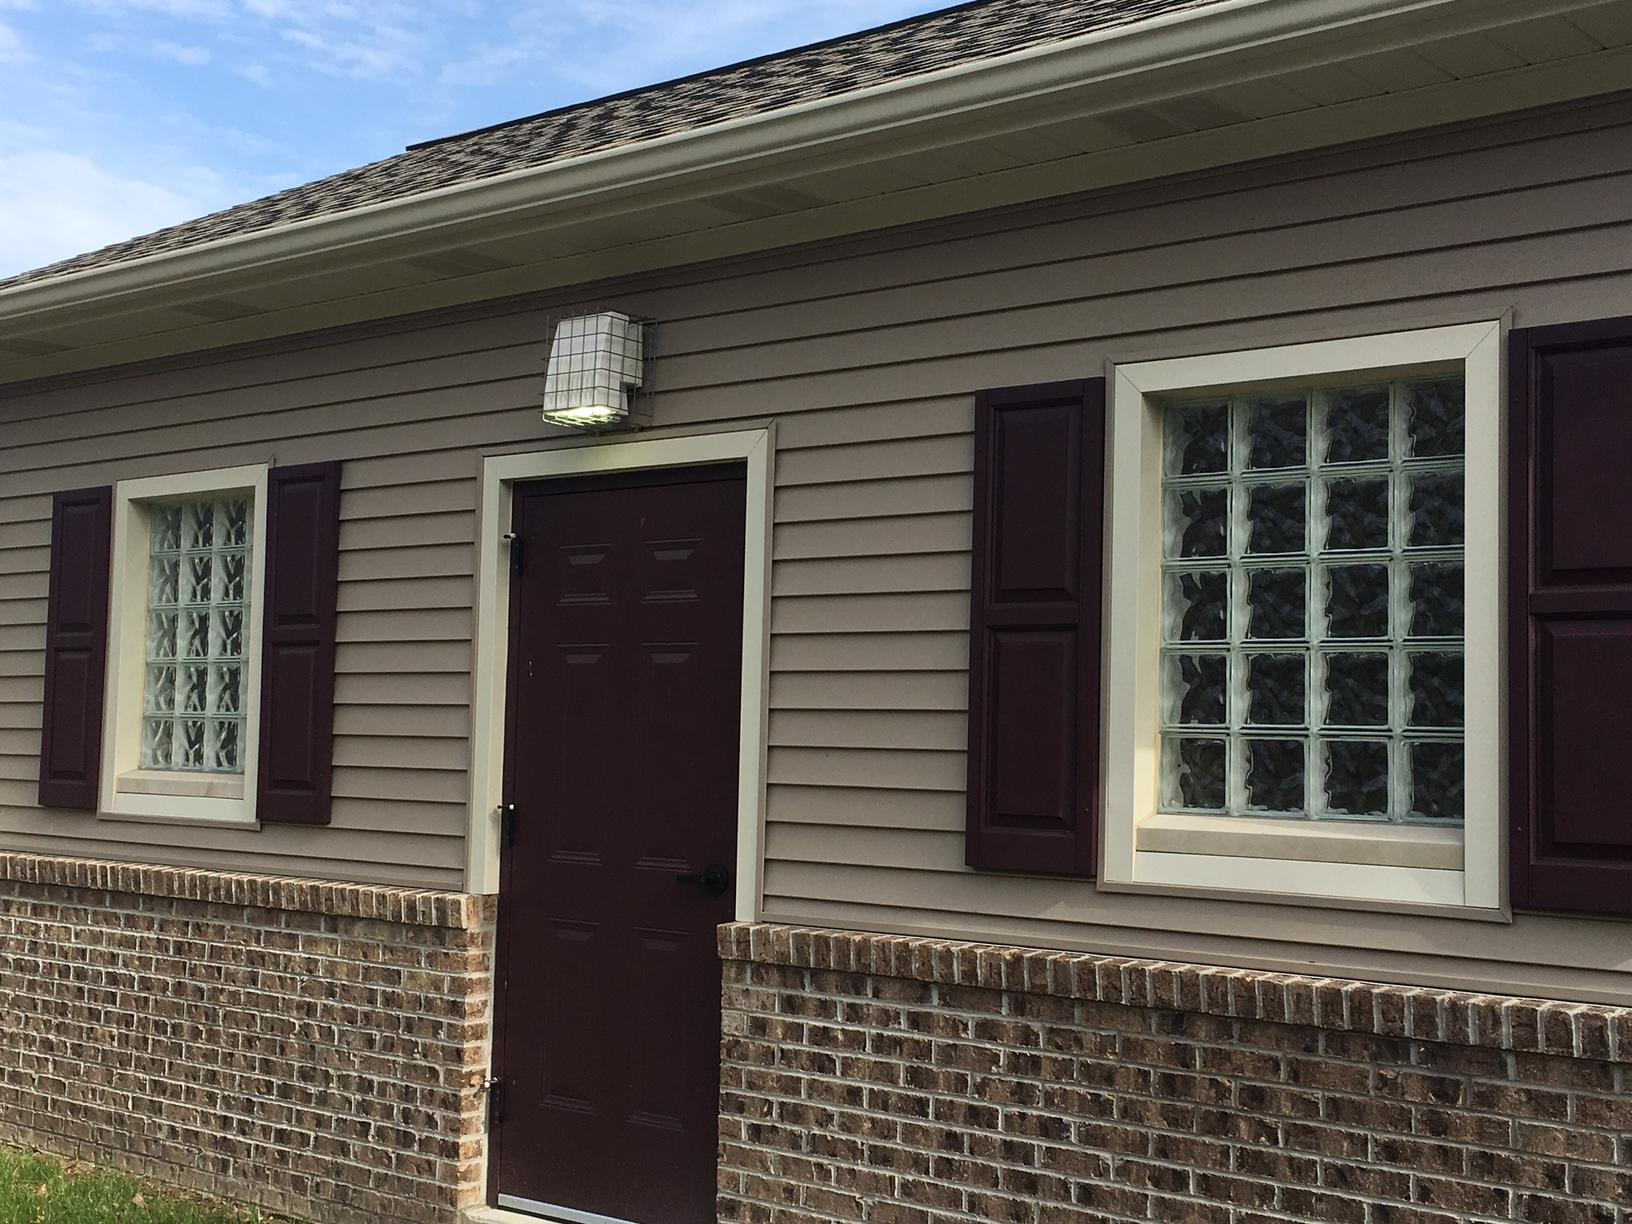 Wave Patterned Window Installation in Coraopolis, Pa